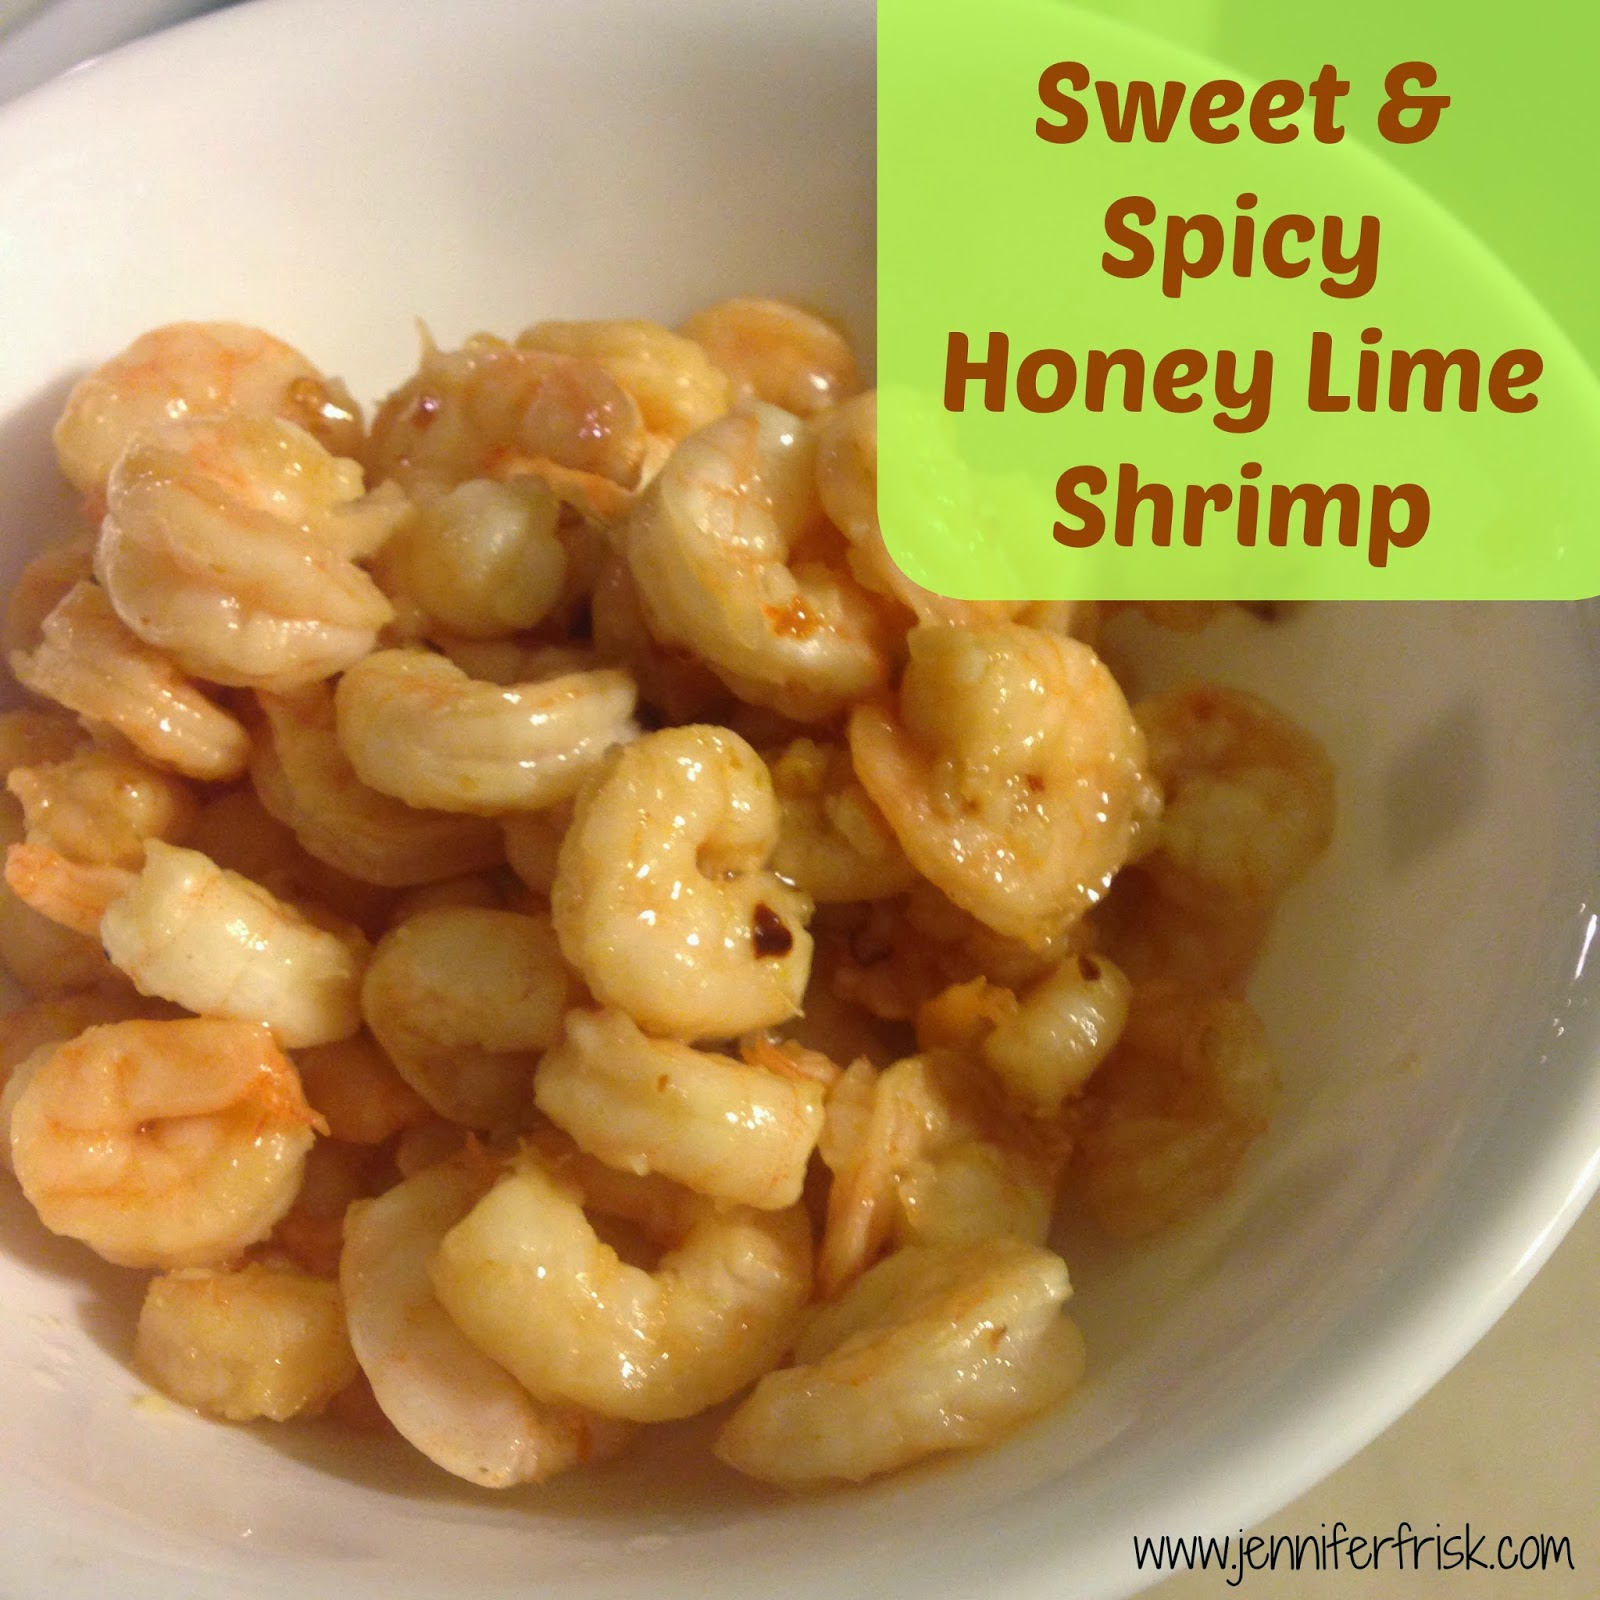 Under 300 Calorie Honey Lime Shrimp Recipe By Tasty: Joy In The Journey: Midweek Mealtime